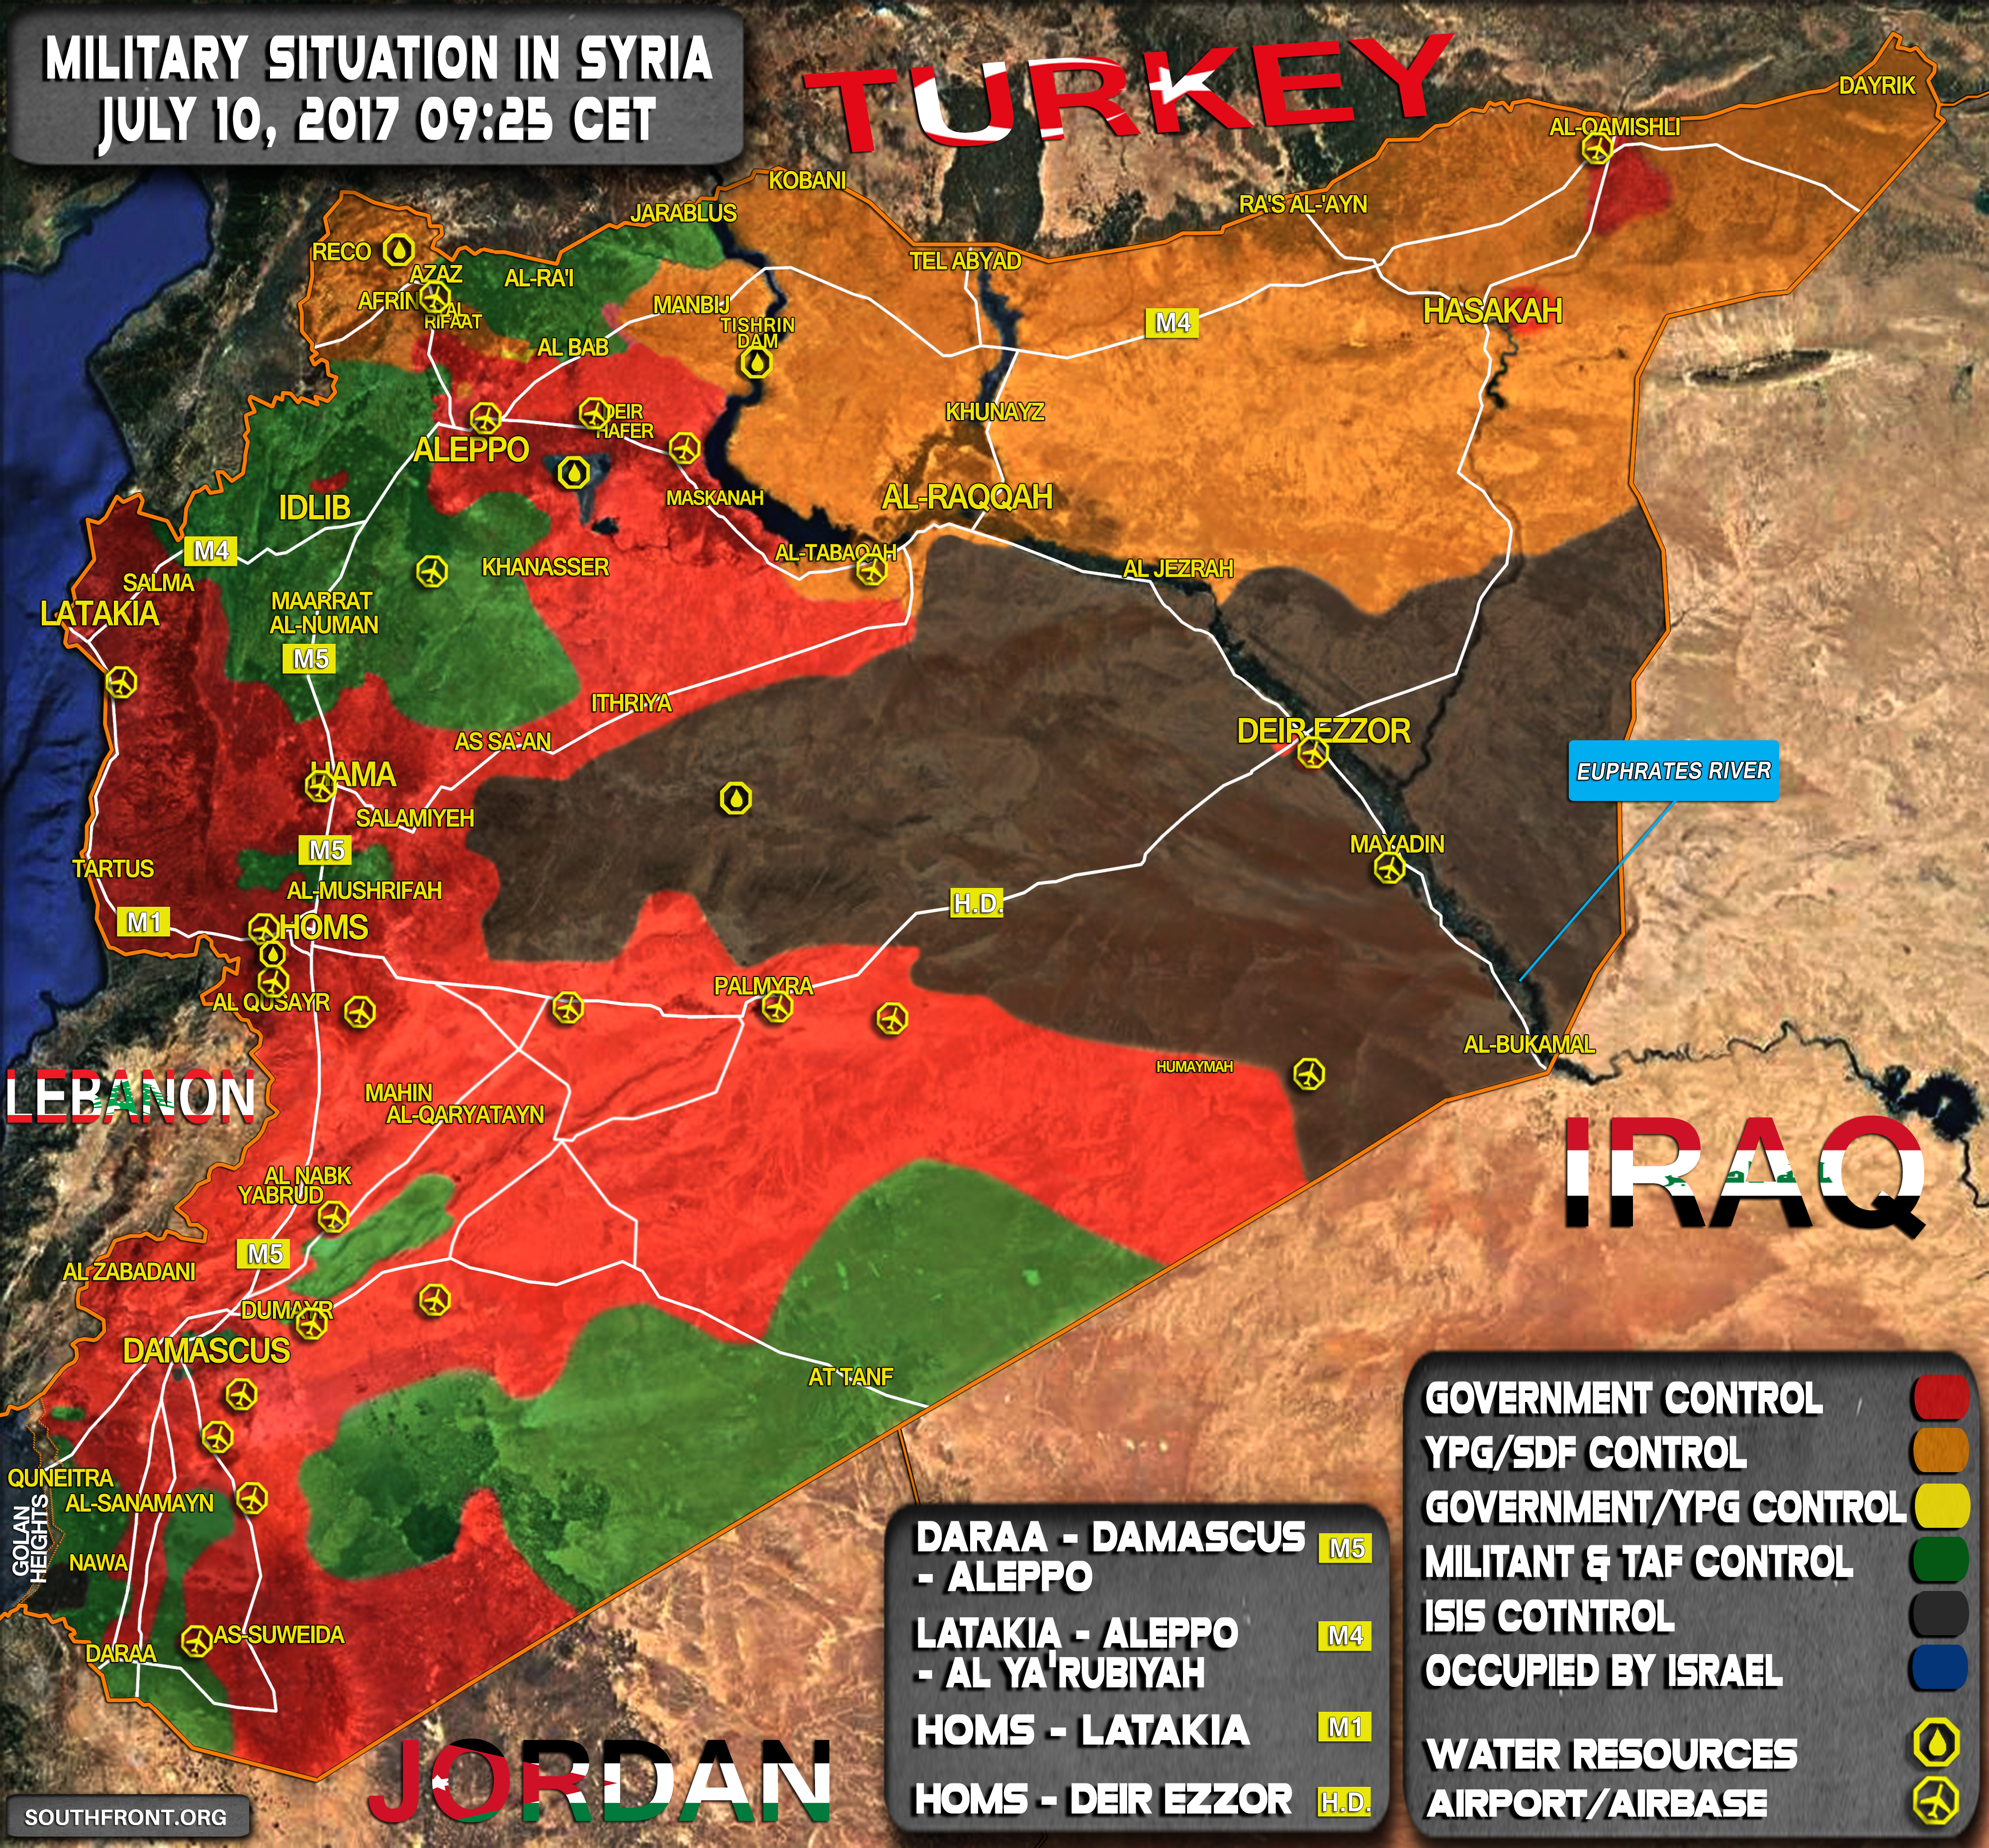 a live map of the syrian civil war  dataisbeautiful - httpsmapssouthfrontorg